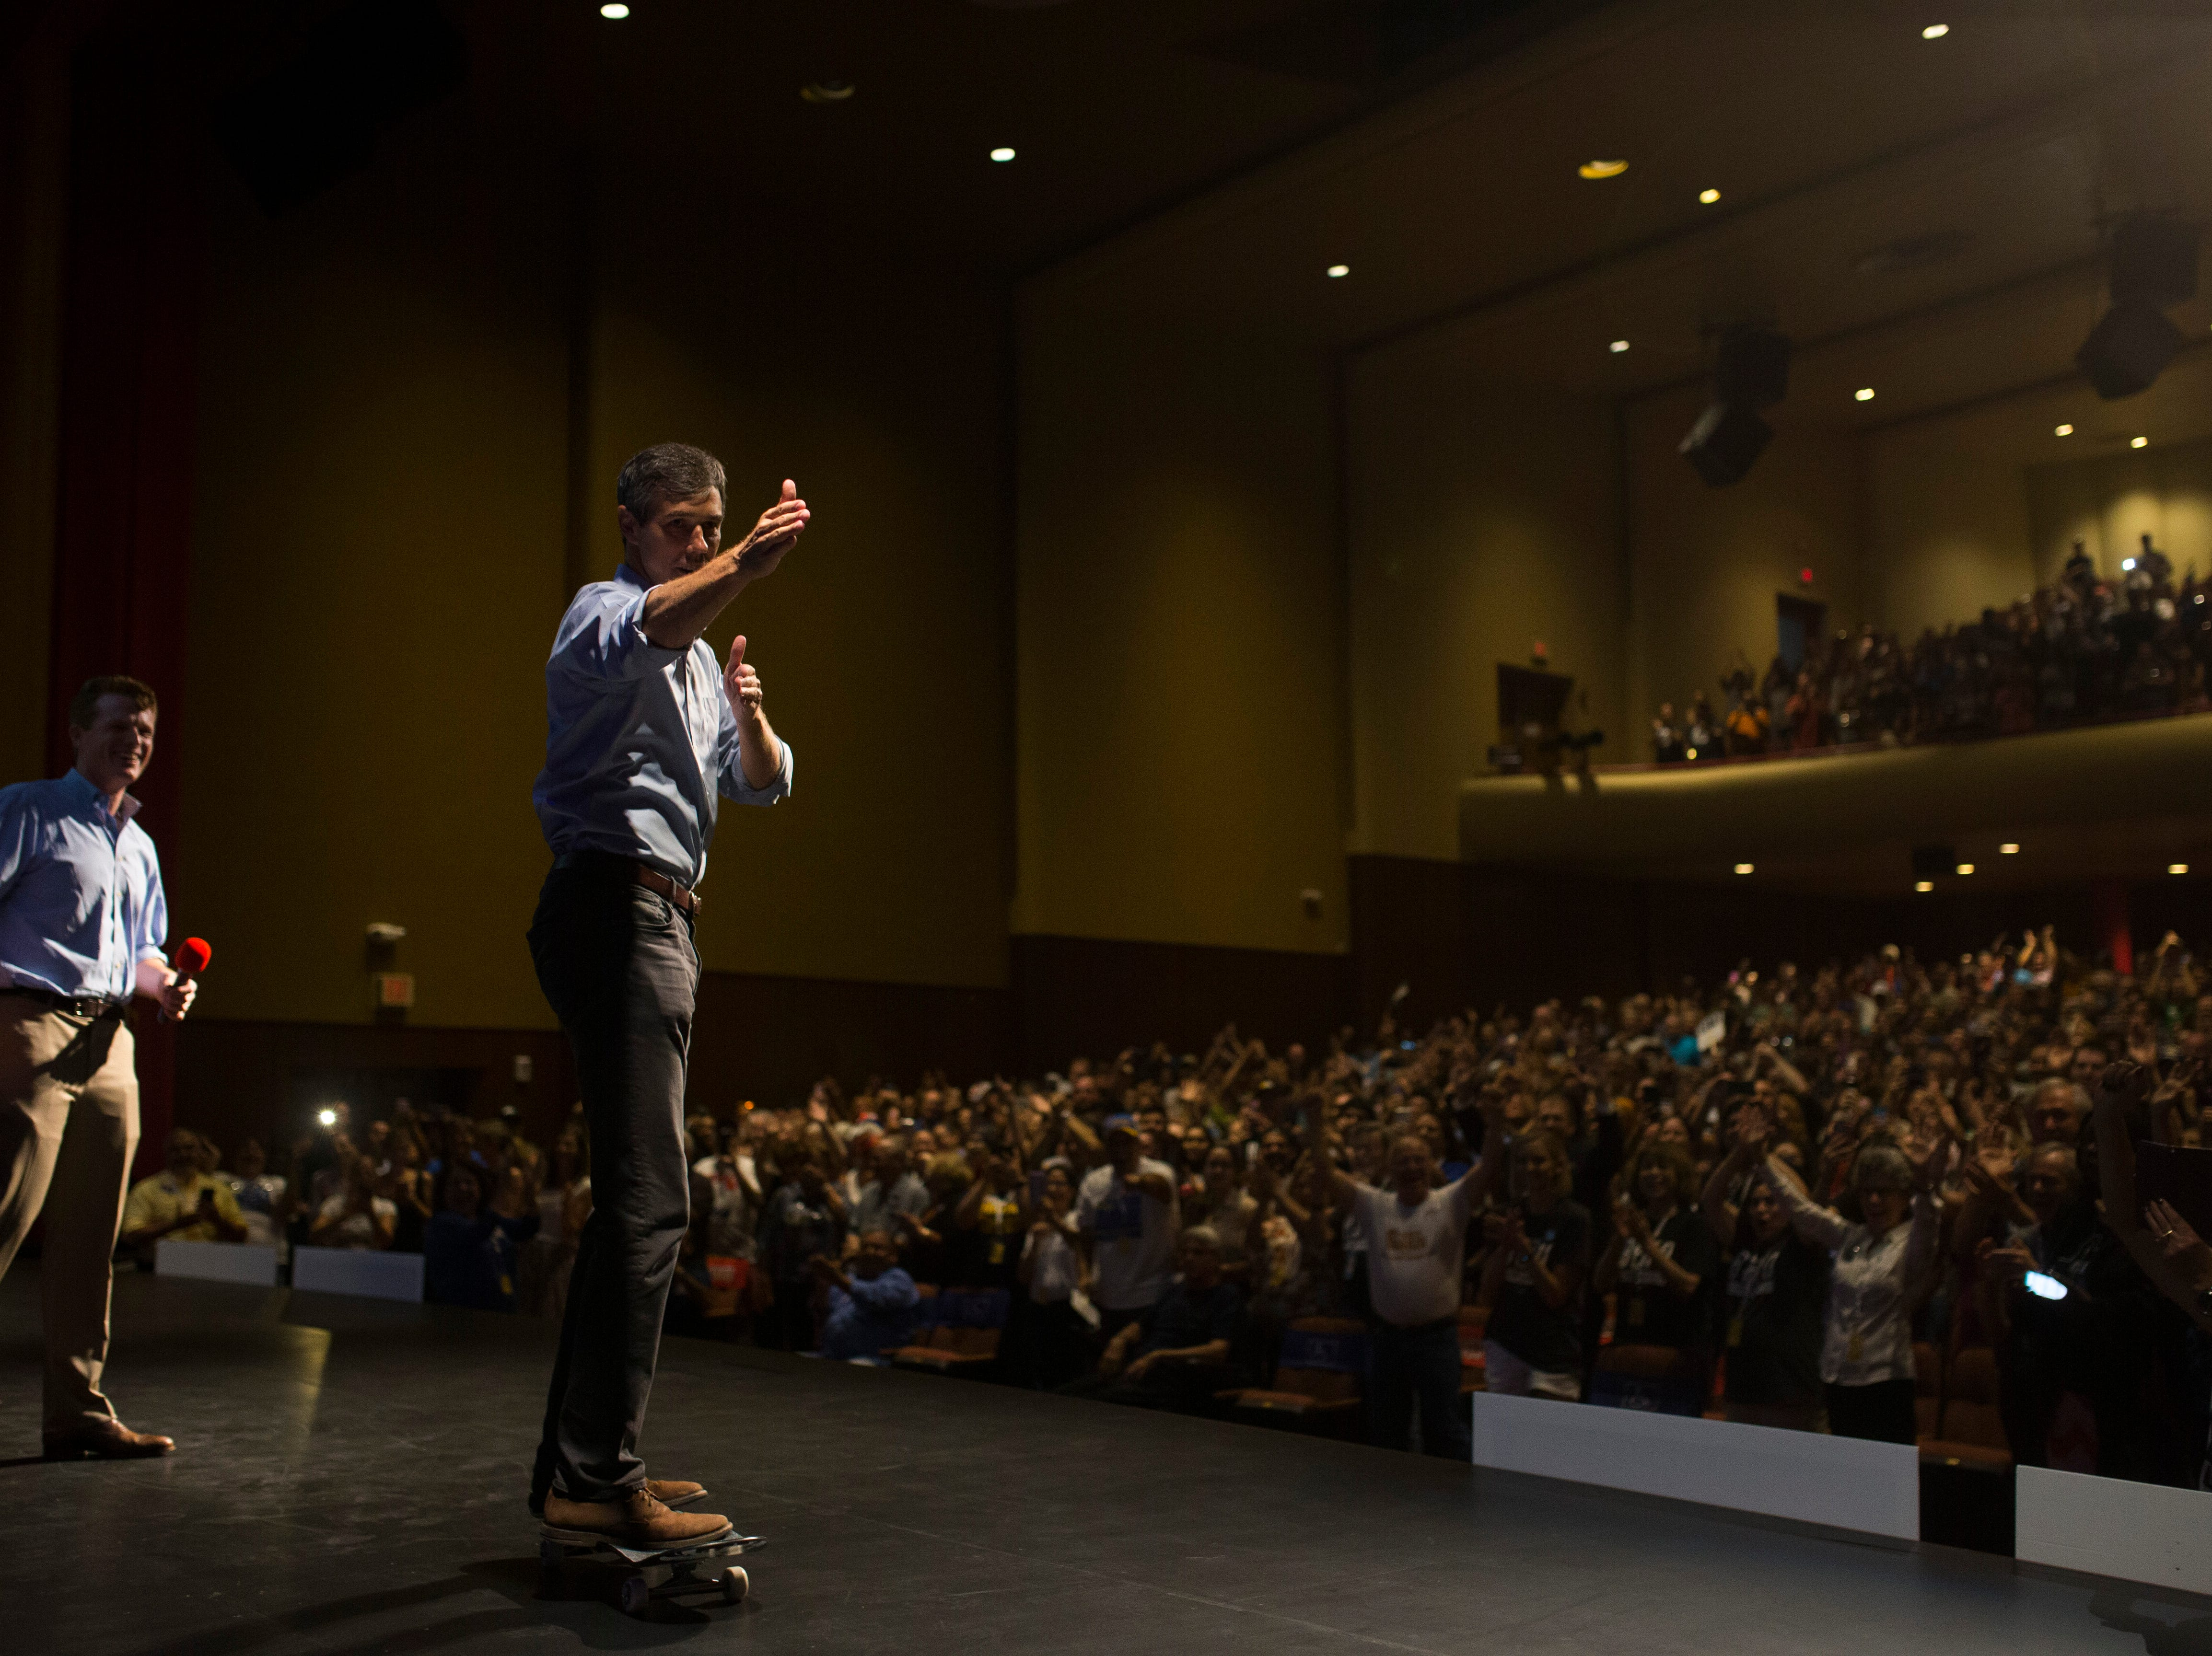 U.S. Rep. Beto O'Rourke skates onto the stage during a campaign event on Saturday, Oct. 13, 2018 at Del Mar College in Corpus Christi.